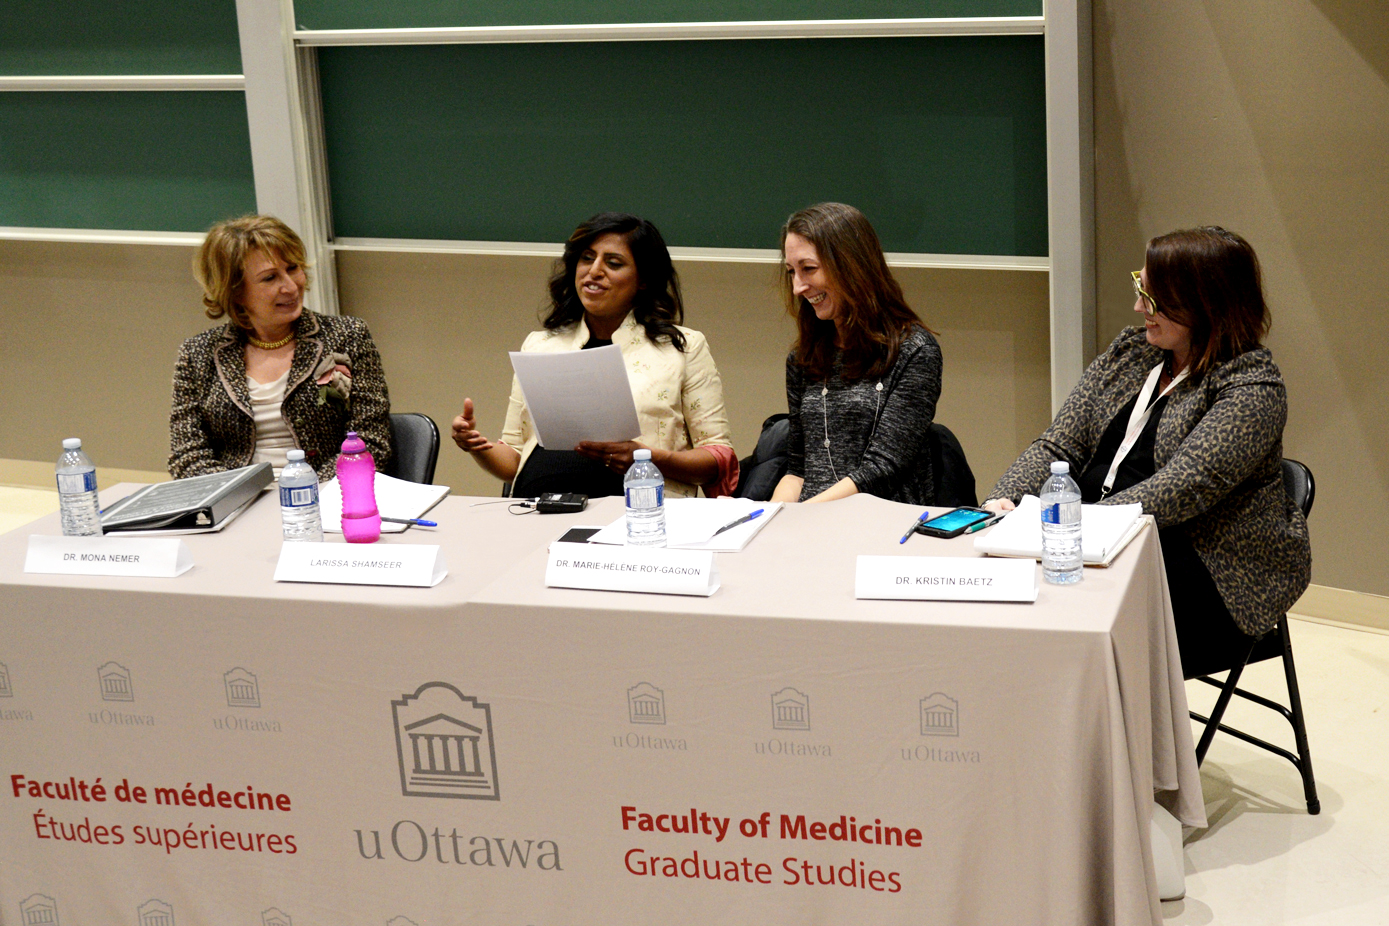 Dr. Mona Nemer, Larissa Shamseer, Dr. Marie-Hélène Roy-Gagnon and Dr. Kristin Baetz sitting at a table.